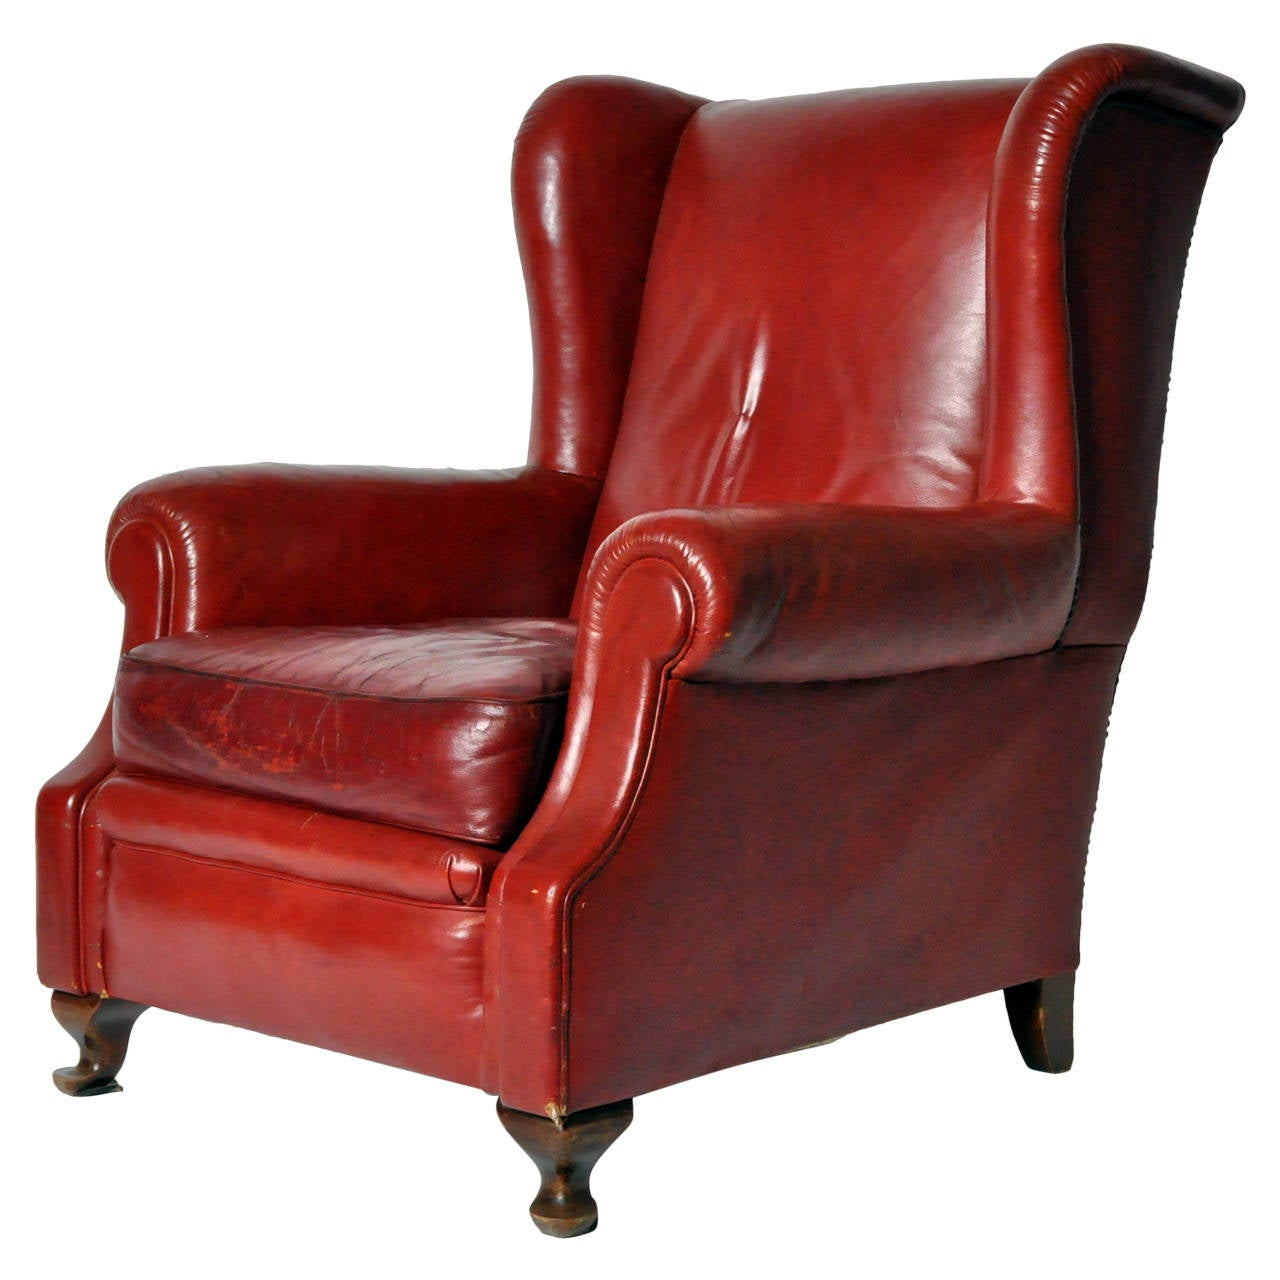 arm chairs for sale aeron task chair review vintage english wingback leather armchair at 1stdibs